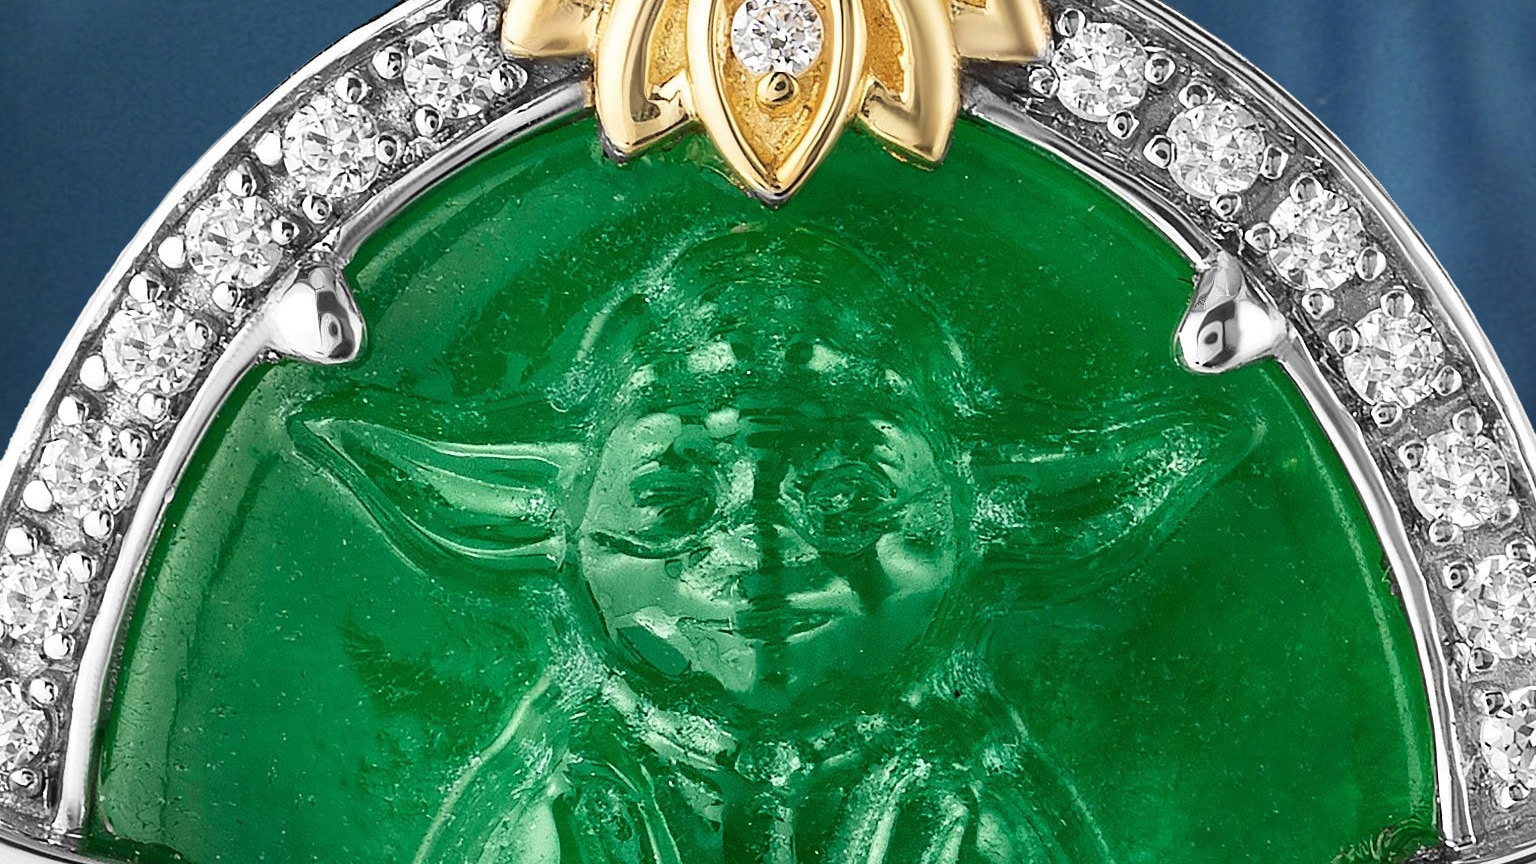 How Eastern Philosophy and Film Details Inspired Star Wars Fine Jewelry